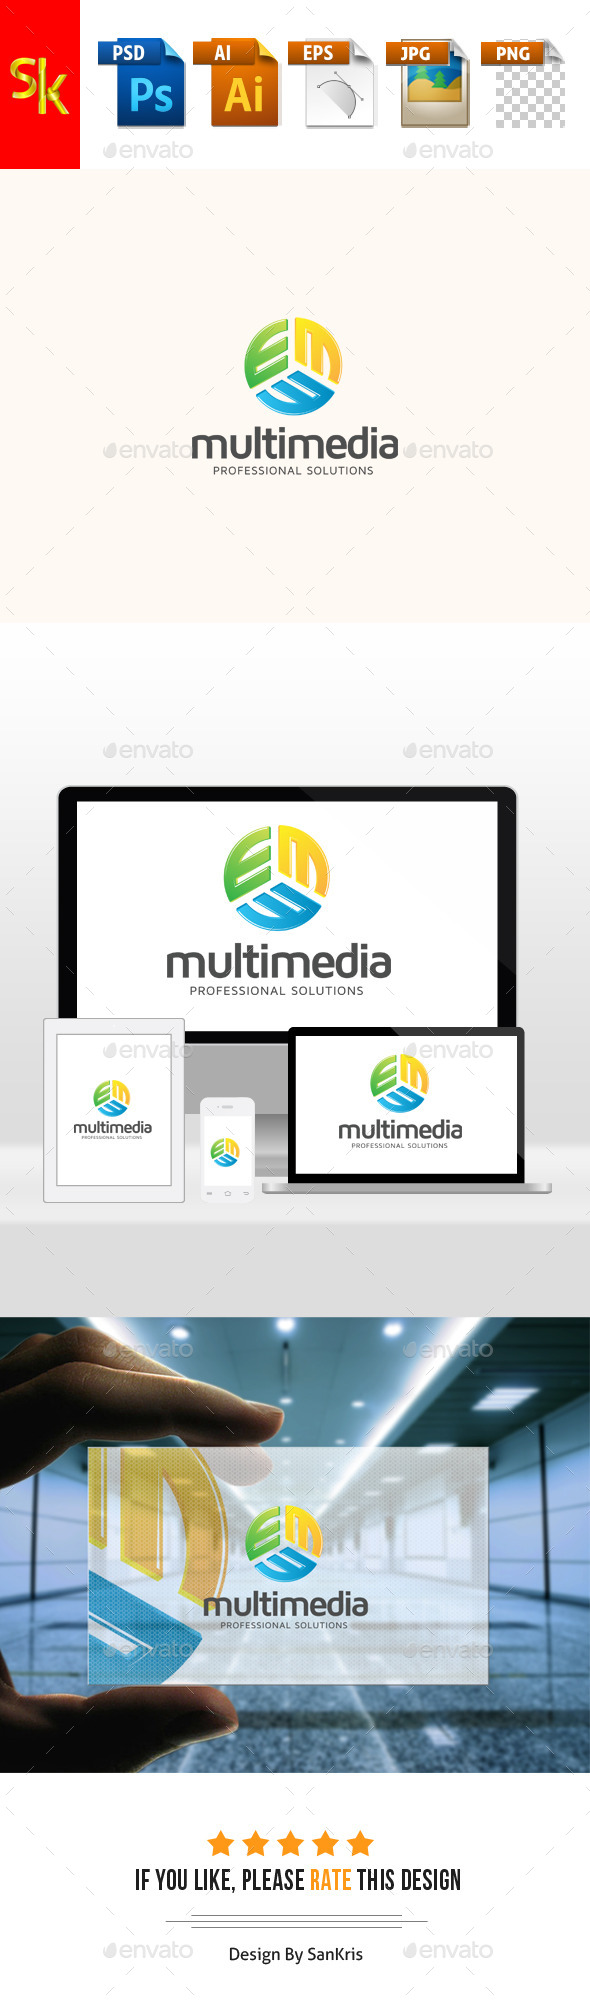 GraphicRiver Multimedia Professional Solutions 11804499